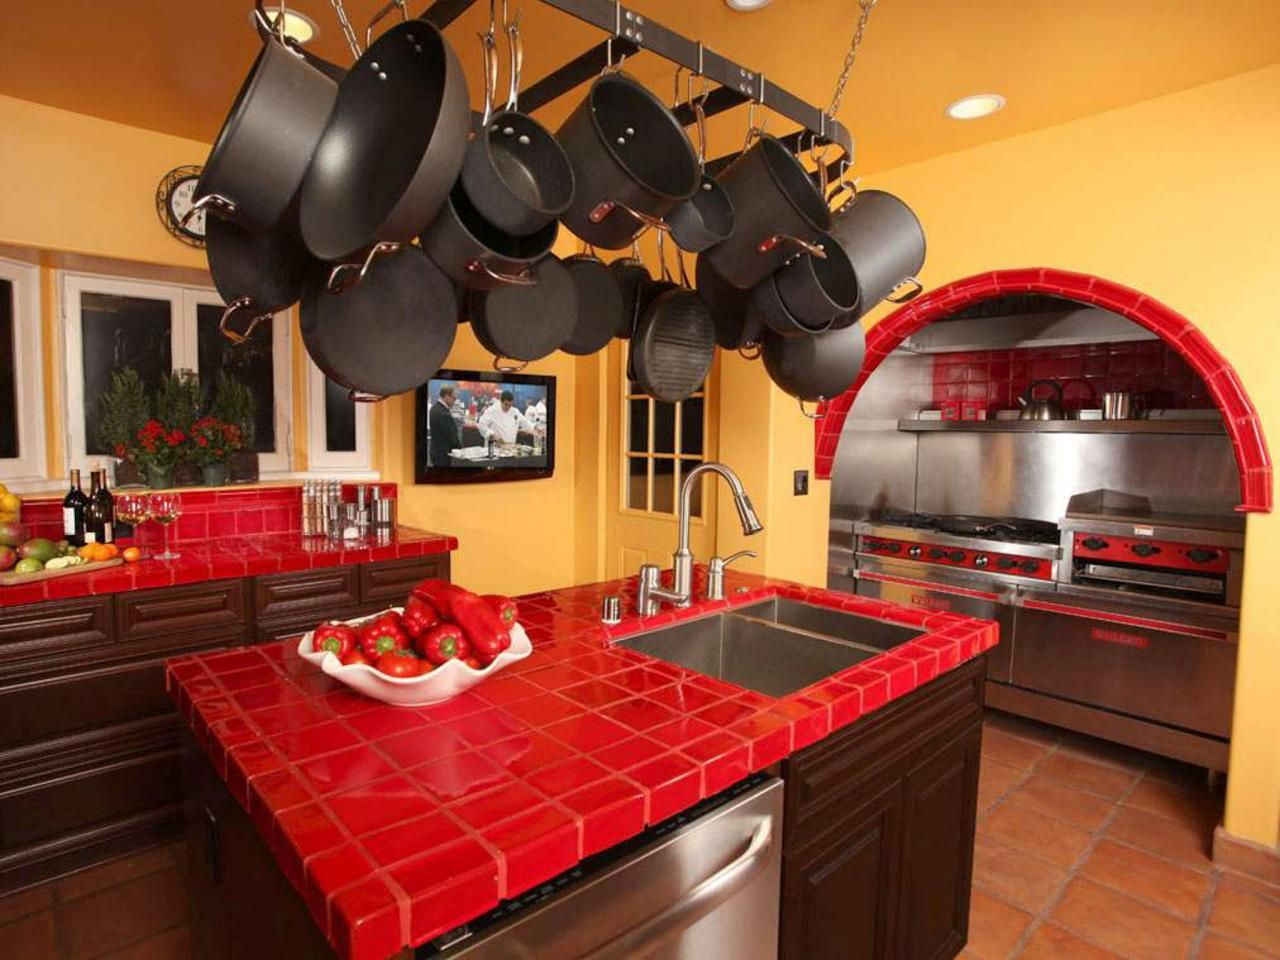 Uncategorized Yellow And Red Kitchen pictures of colorful kitchens ideas for using color in the butcher block kitchen